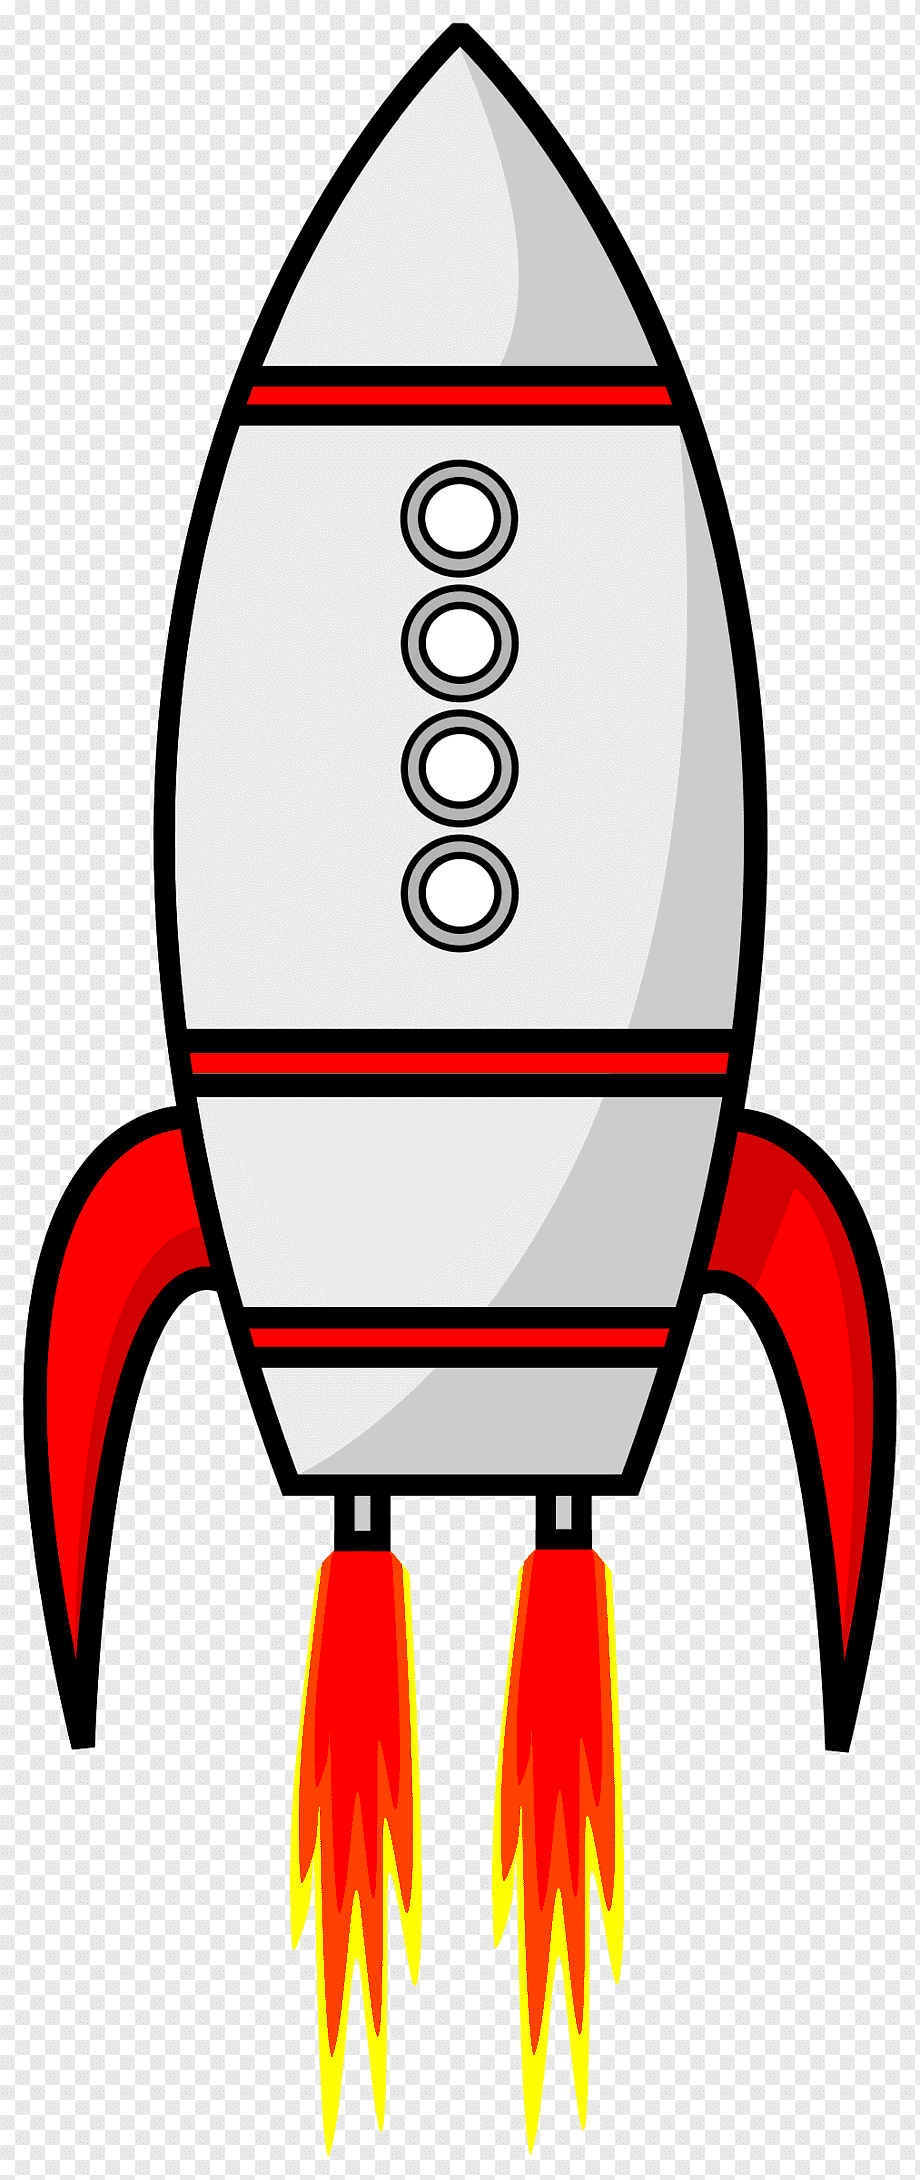 Gambar Roket Animasi : gambar, roket, animasi, Rocket, Cartoon, Spacecraft,, Running, Space,, Animation,, Saturn, PNGWing